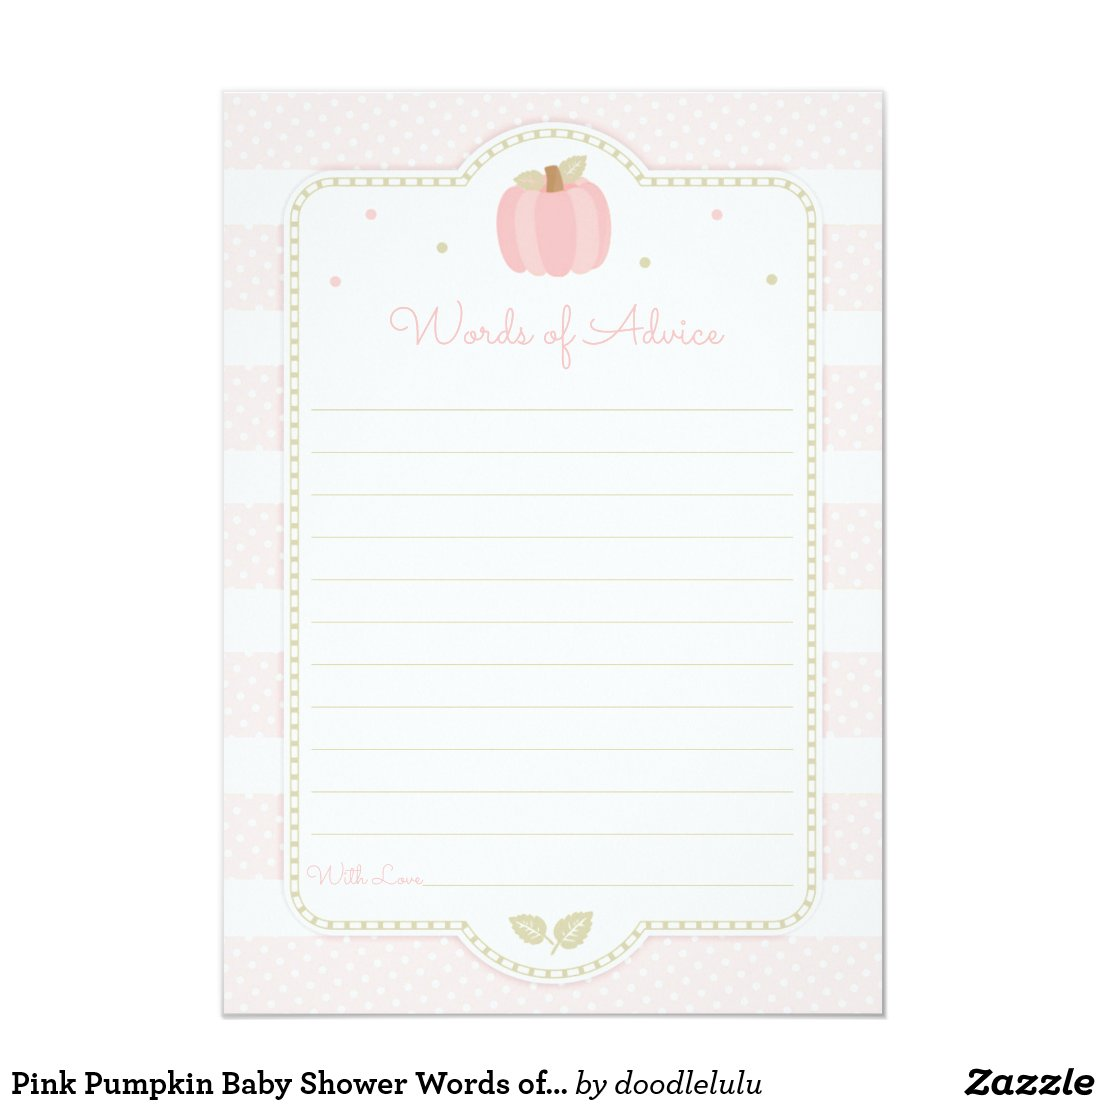 Pink Pumpkin Baby Shower Words of Advice Invitation